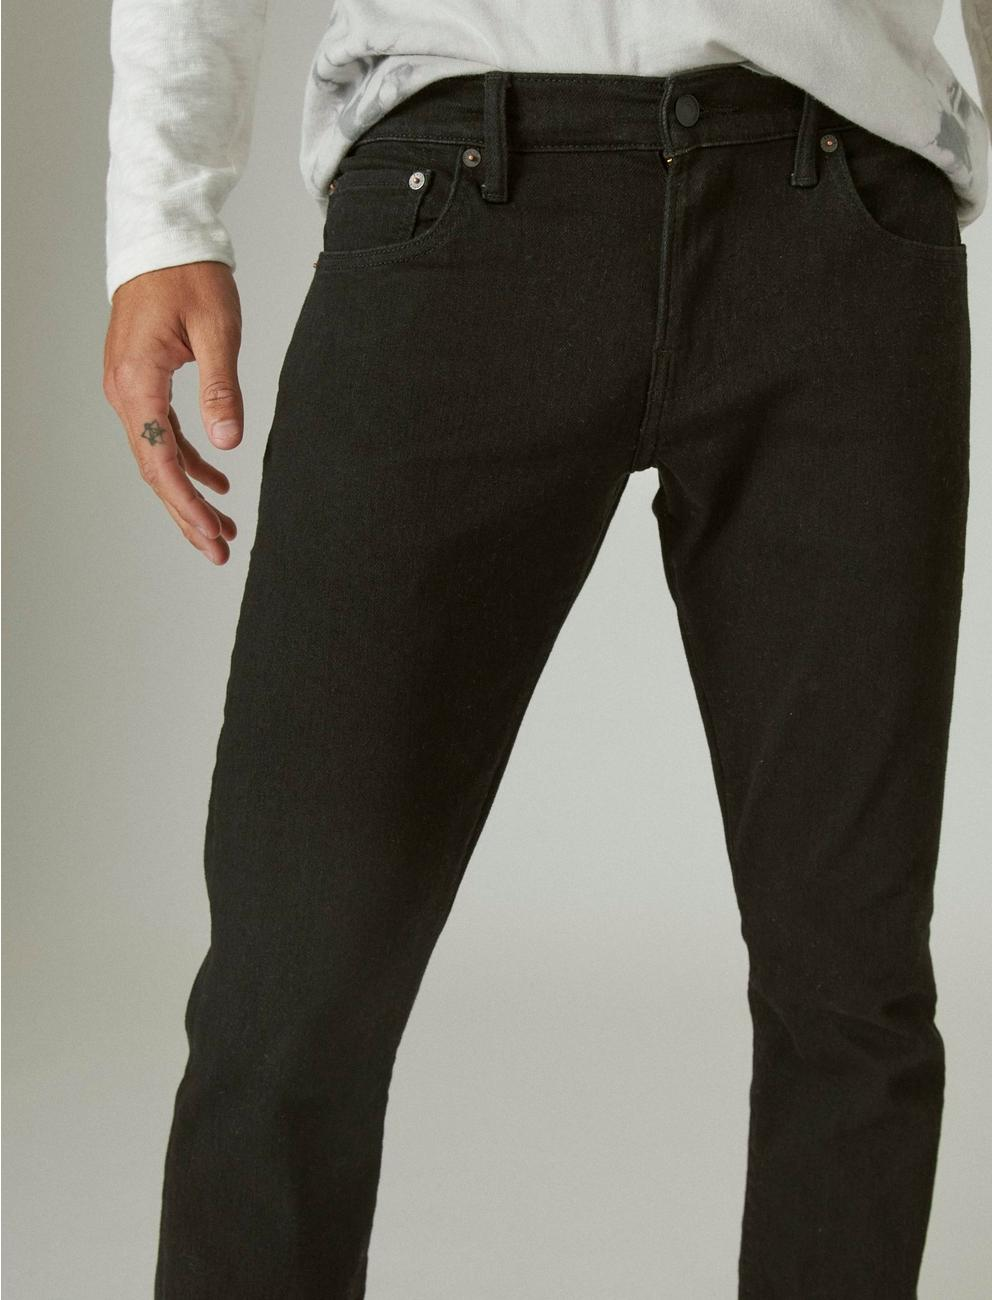 110 SLIM ADVANCED STRETCH JEAN, BLACK RINSE